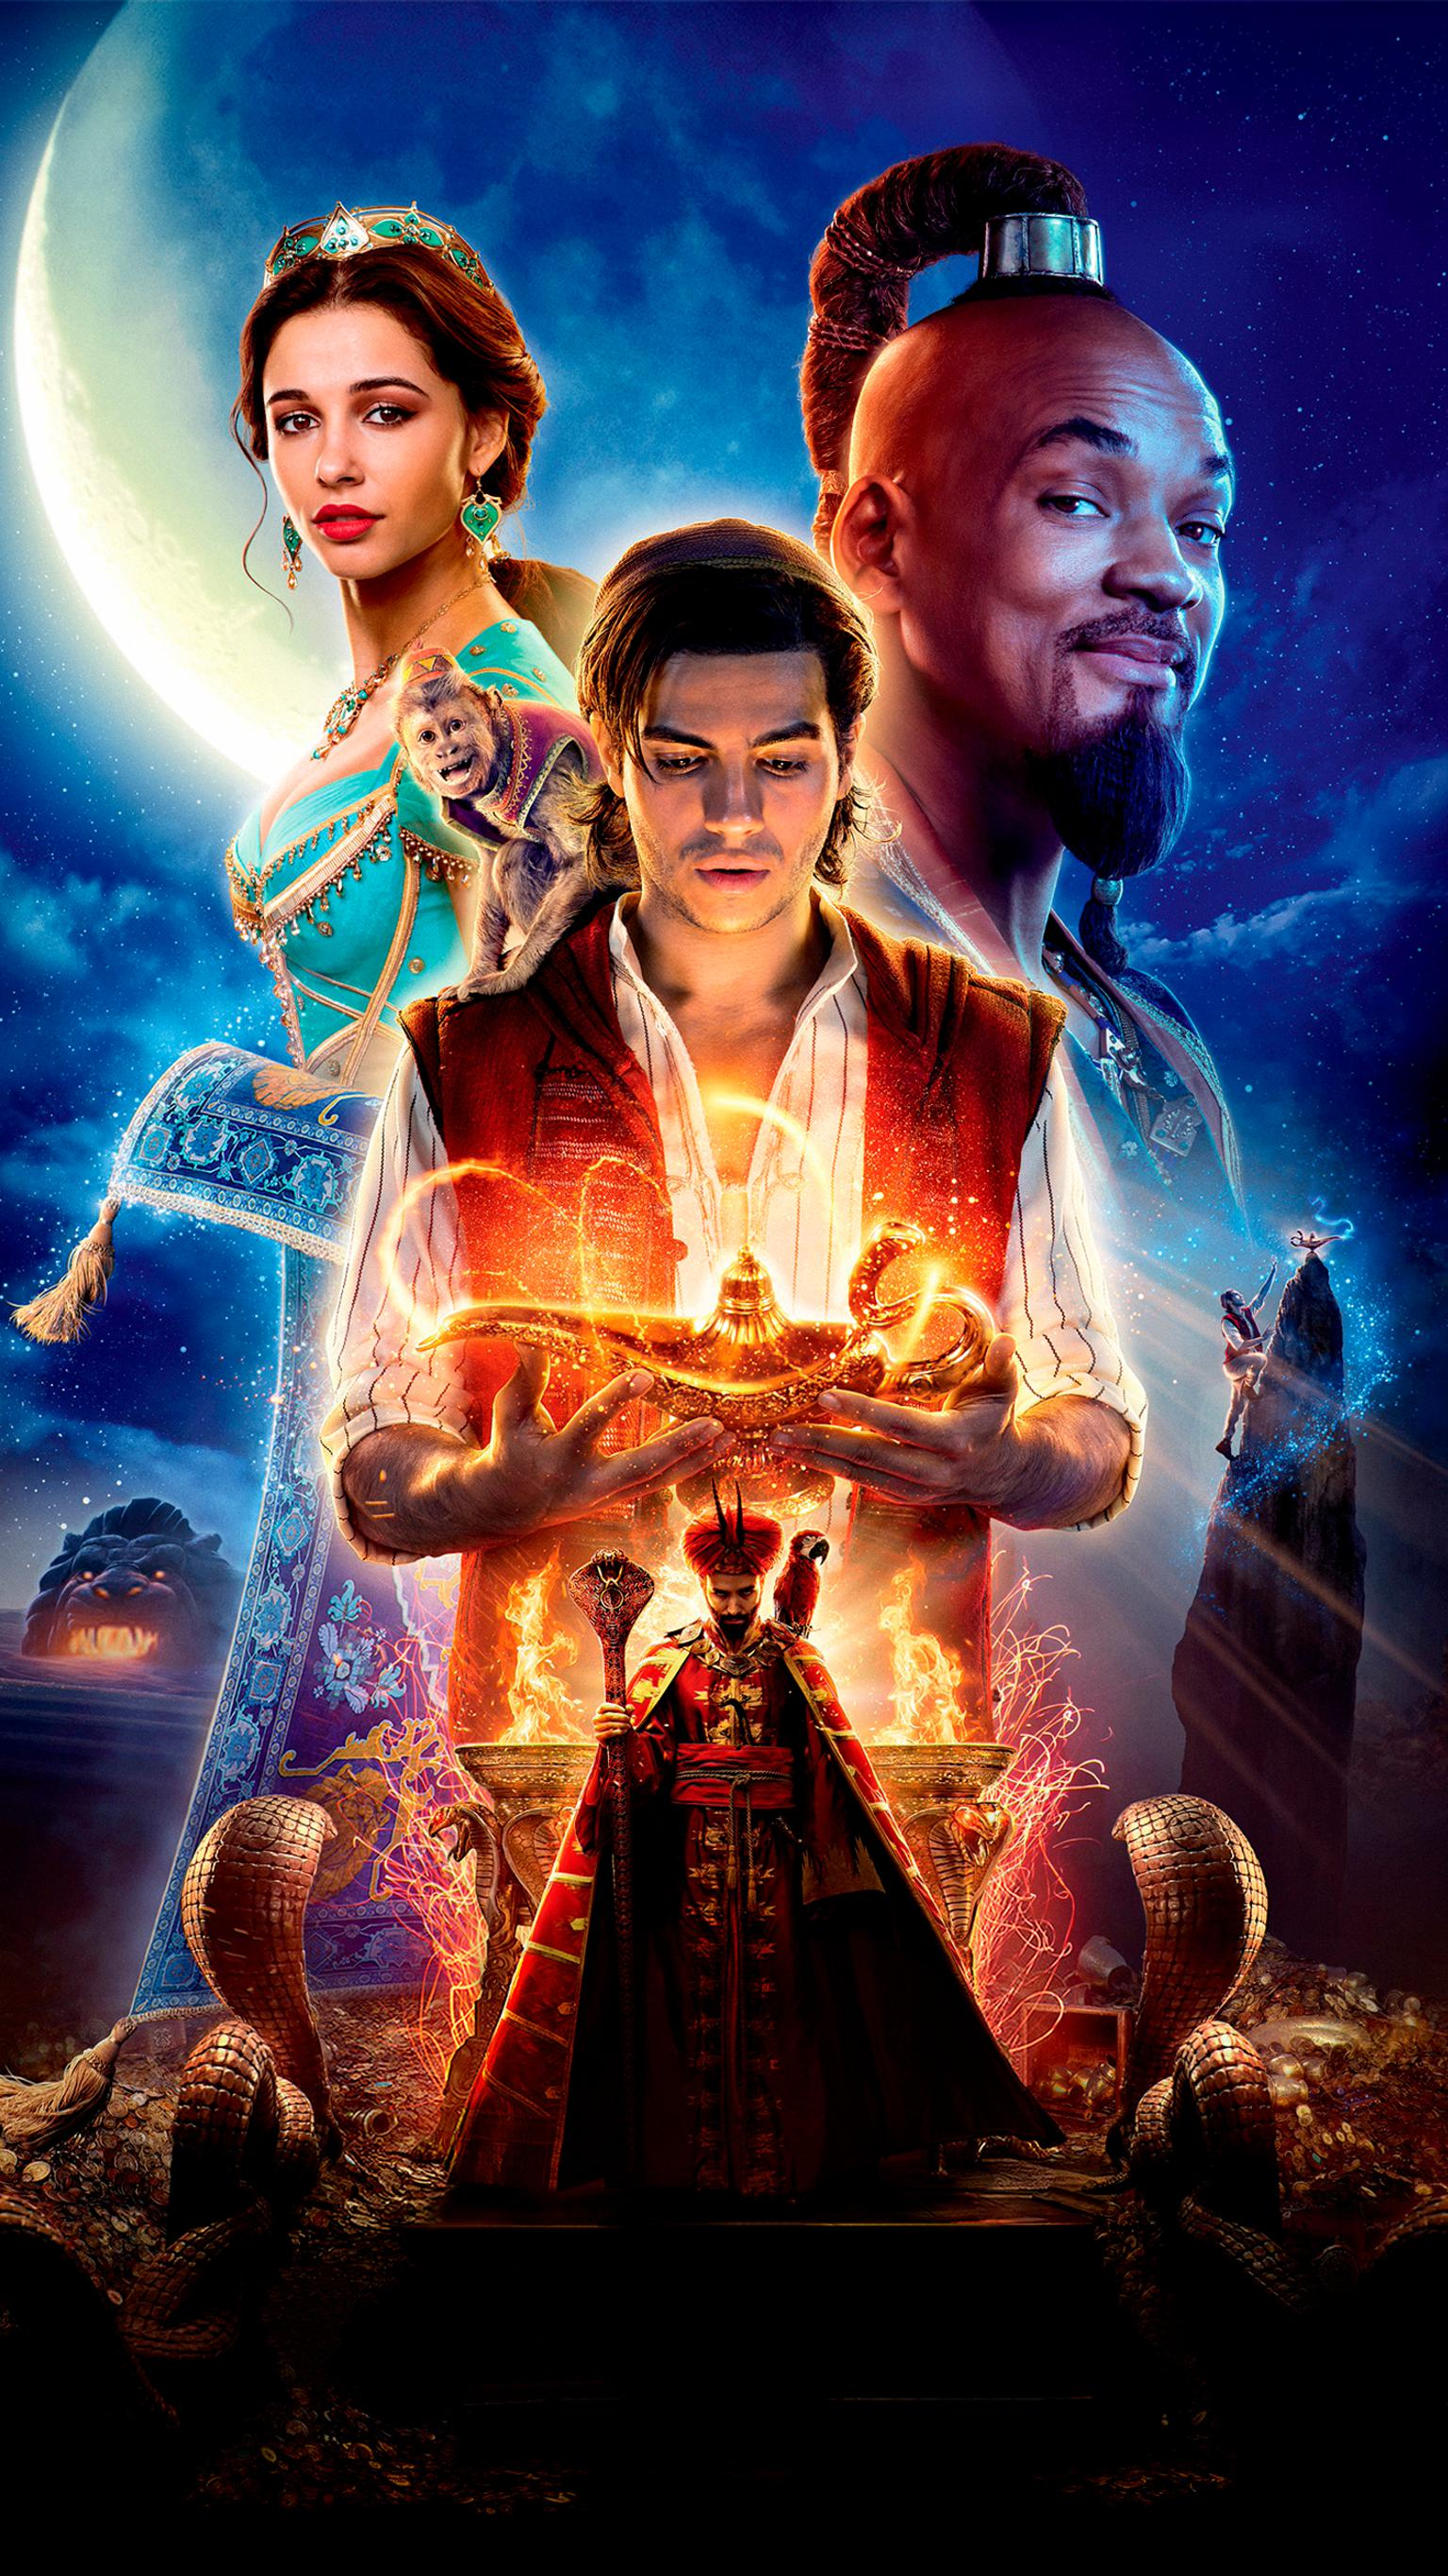 Aladdin 2019 Wallpapers High Quality   Download Free